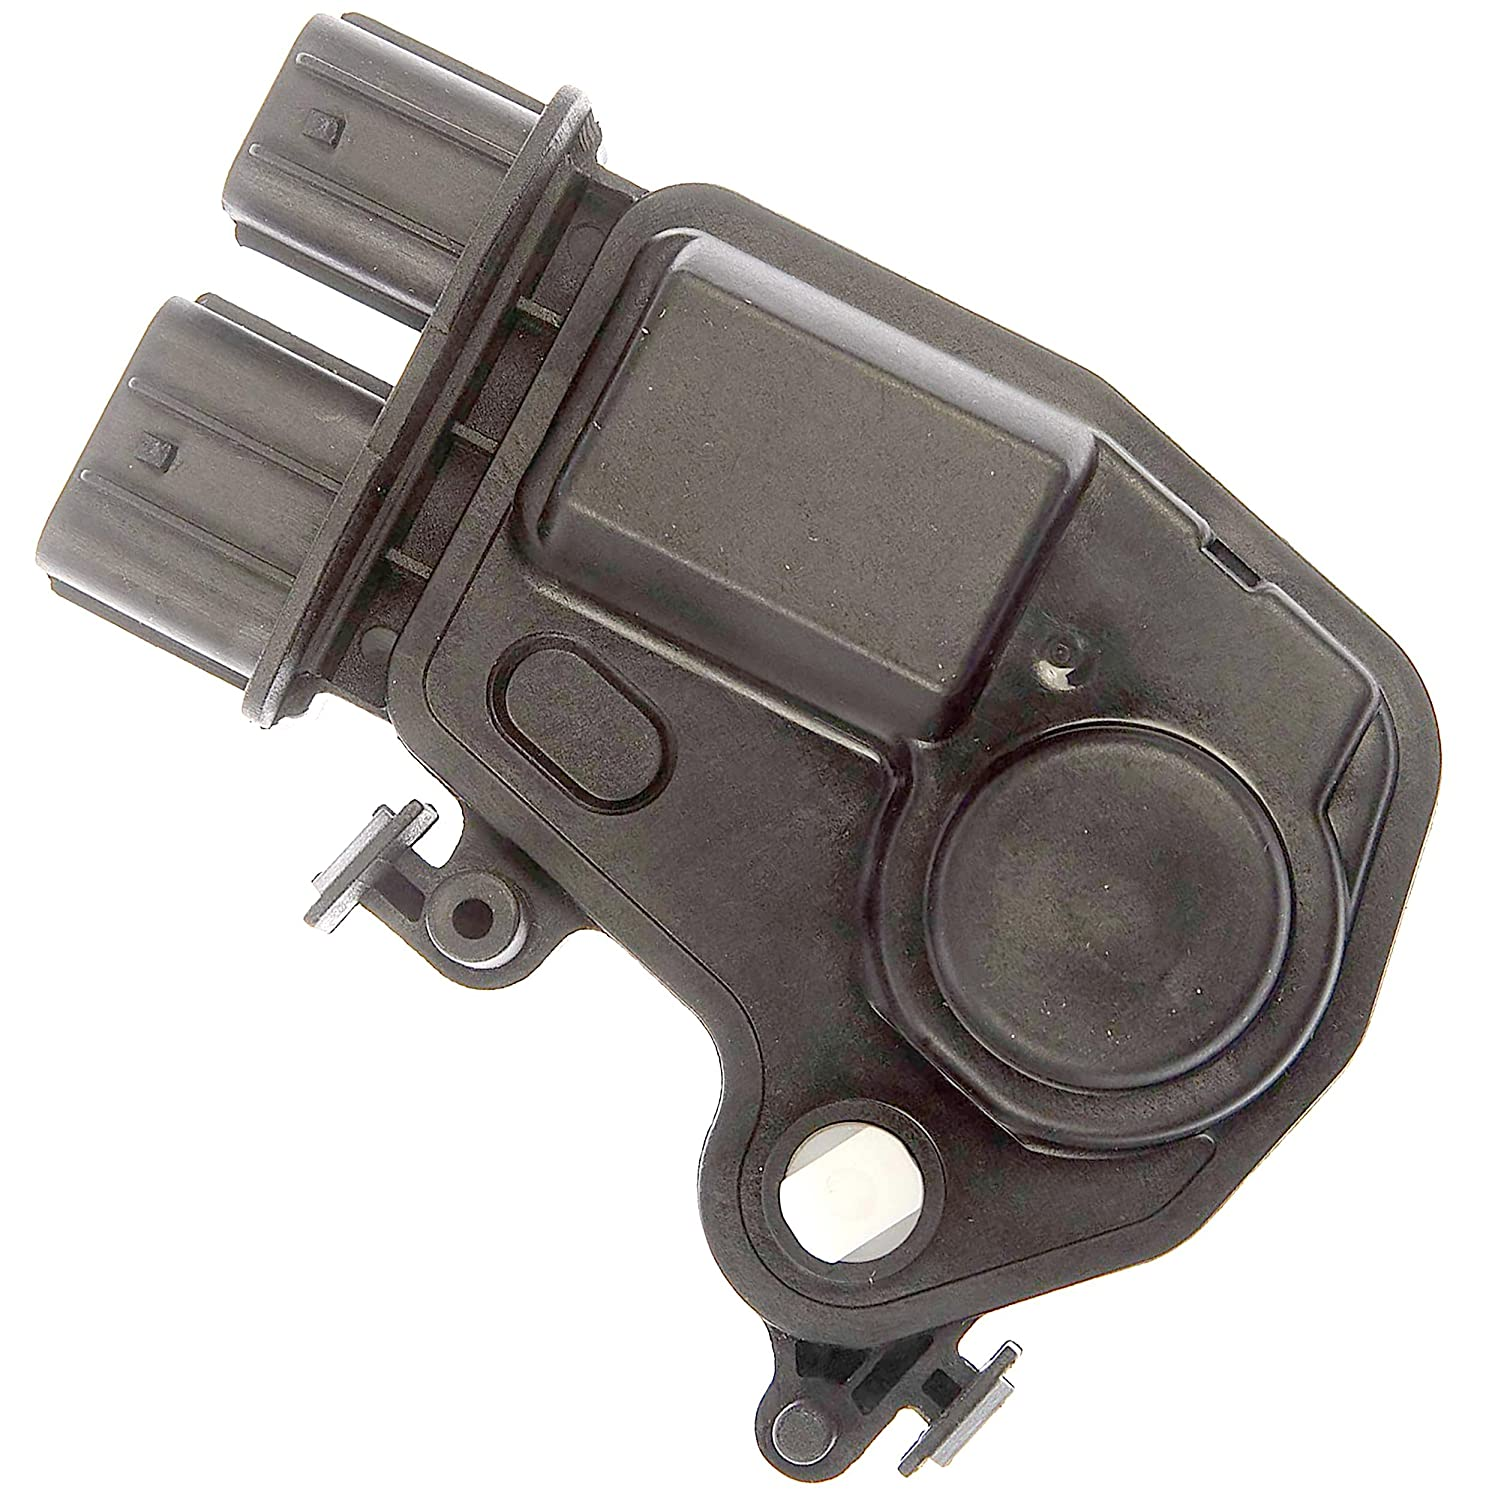 View Compatibility Chart For Your Specific Models; Replaces Honda 72115-S6A-J01, 72115-S6A-J11 APDTY 857412 Door Lock Actuator Motor Fits Front Right Passenger-Side On Select Honda /& Acura Models